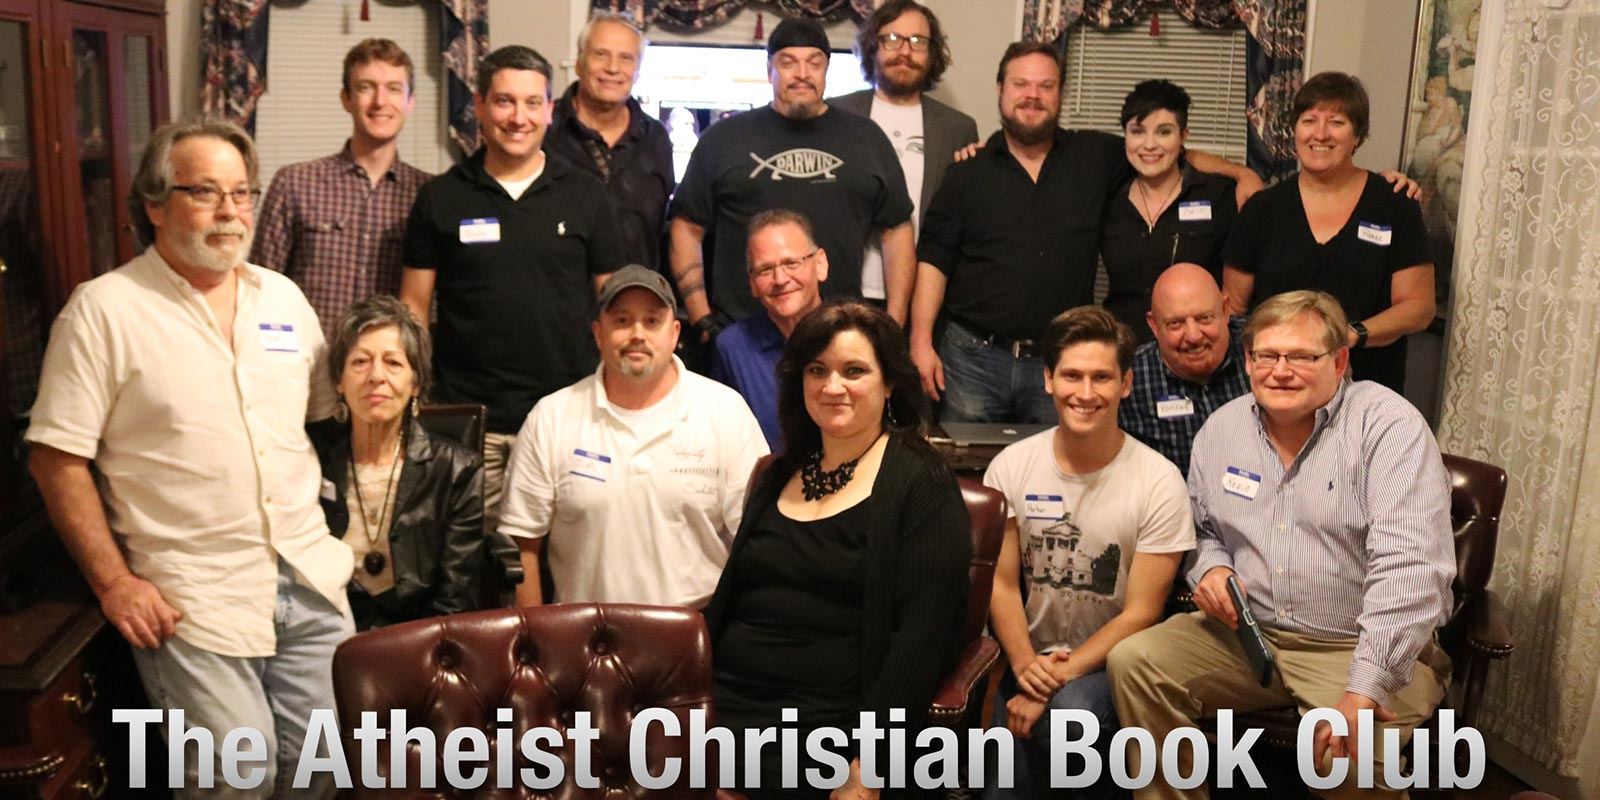 Photo of the Atheist Christian Book Club